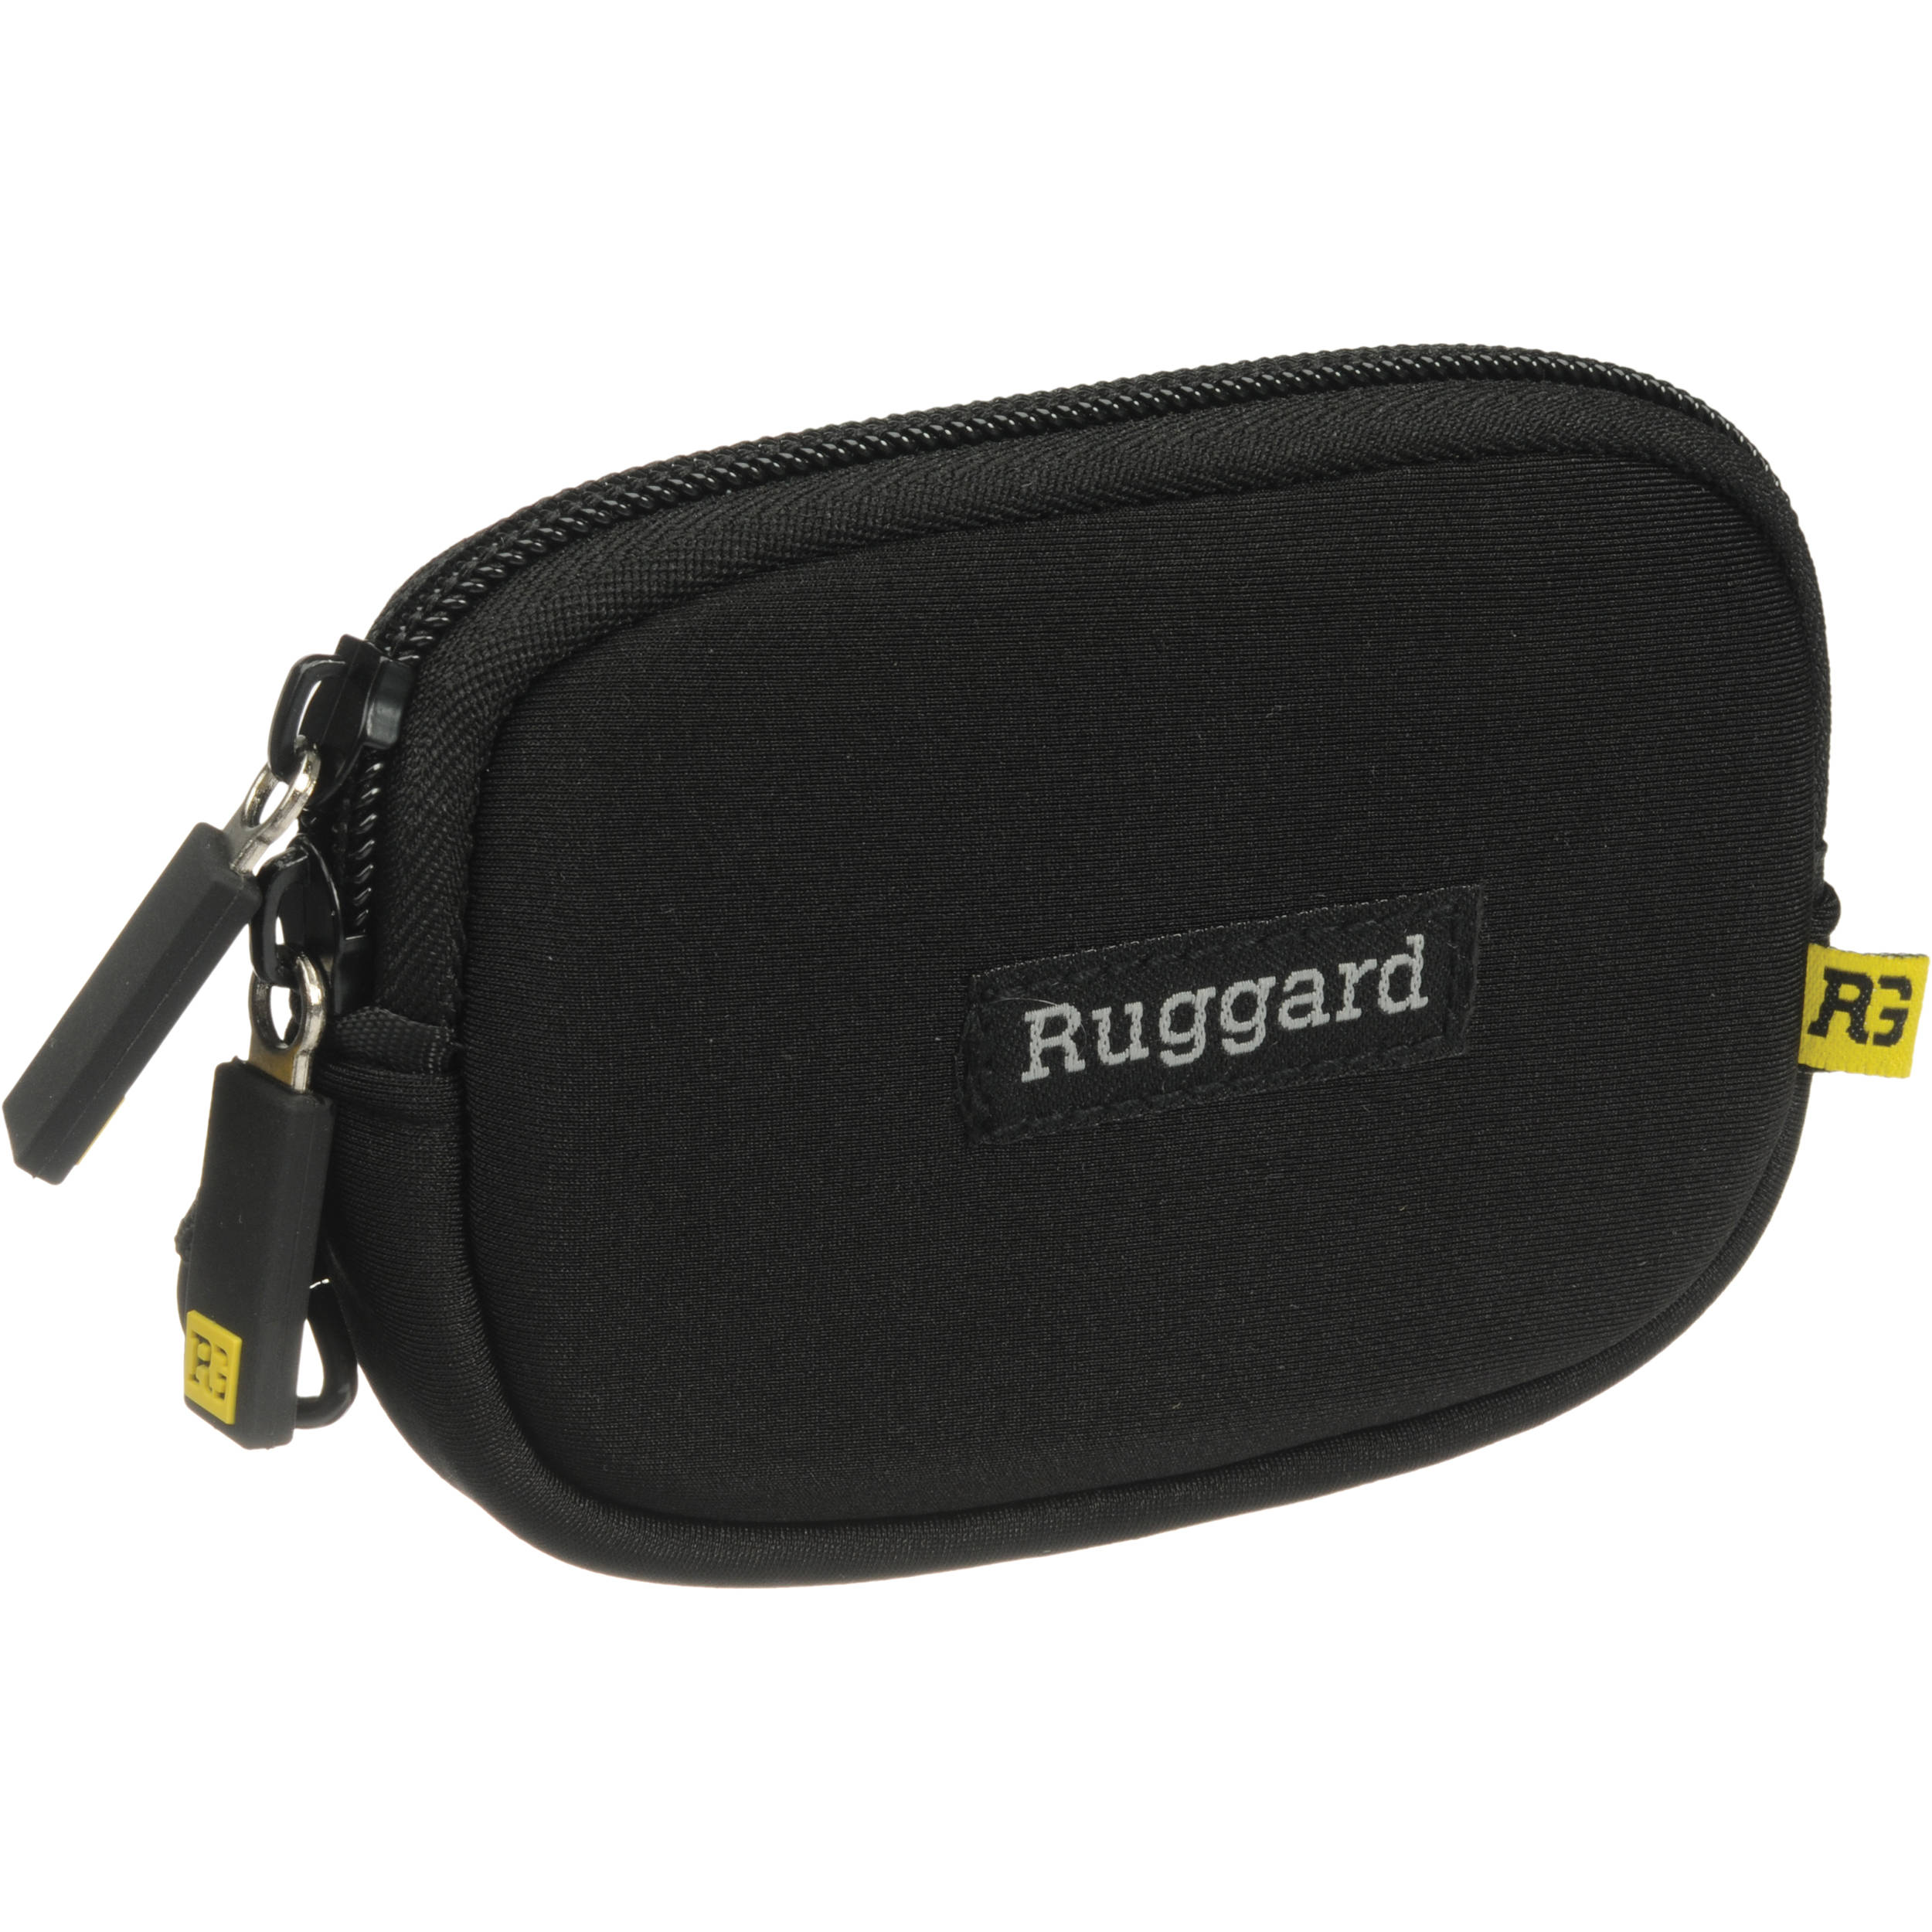 Ruggard np 230 neoprene pouch np 230 b h photo video for Ecksofa 230 x 230